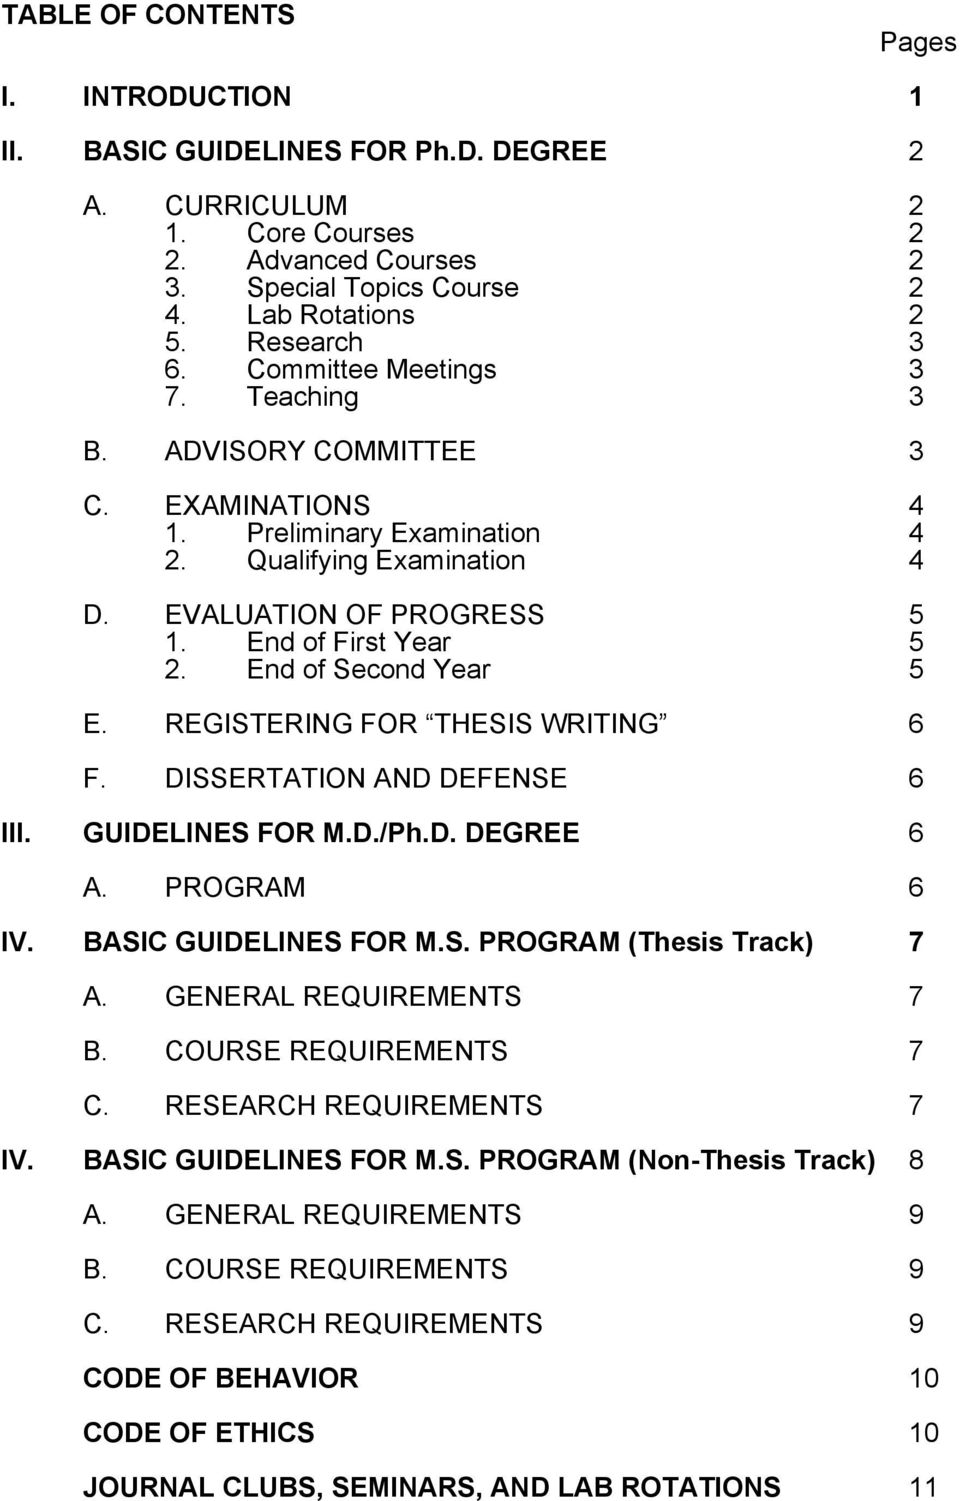 End of Second Year 5 E. REGISTERING FOR THESIS WRITING 6 F. DISSERTATION AND DEFENSE 6 III. GUIDELINES FOR M.D./Ph.D. DEGREE 6 A. PROGRAM 6 IV. BASIC GUIDELINES FOR M.S. PROGRAM (Thesis Track) 7 A.